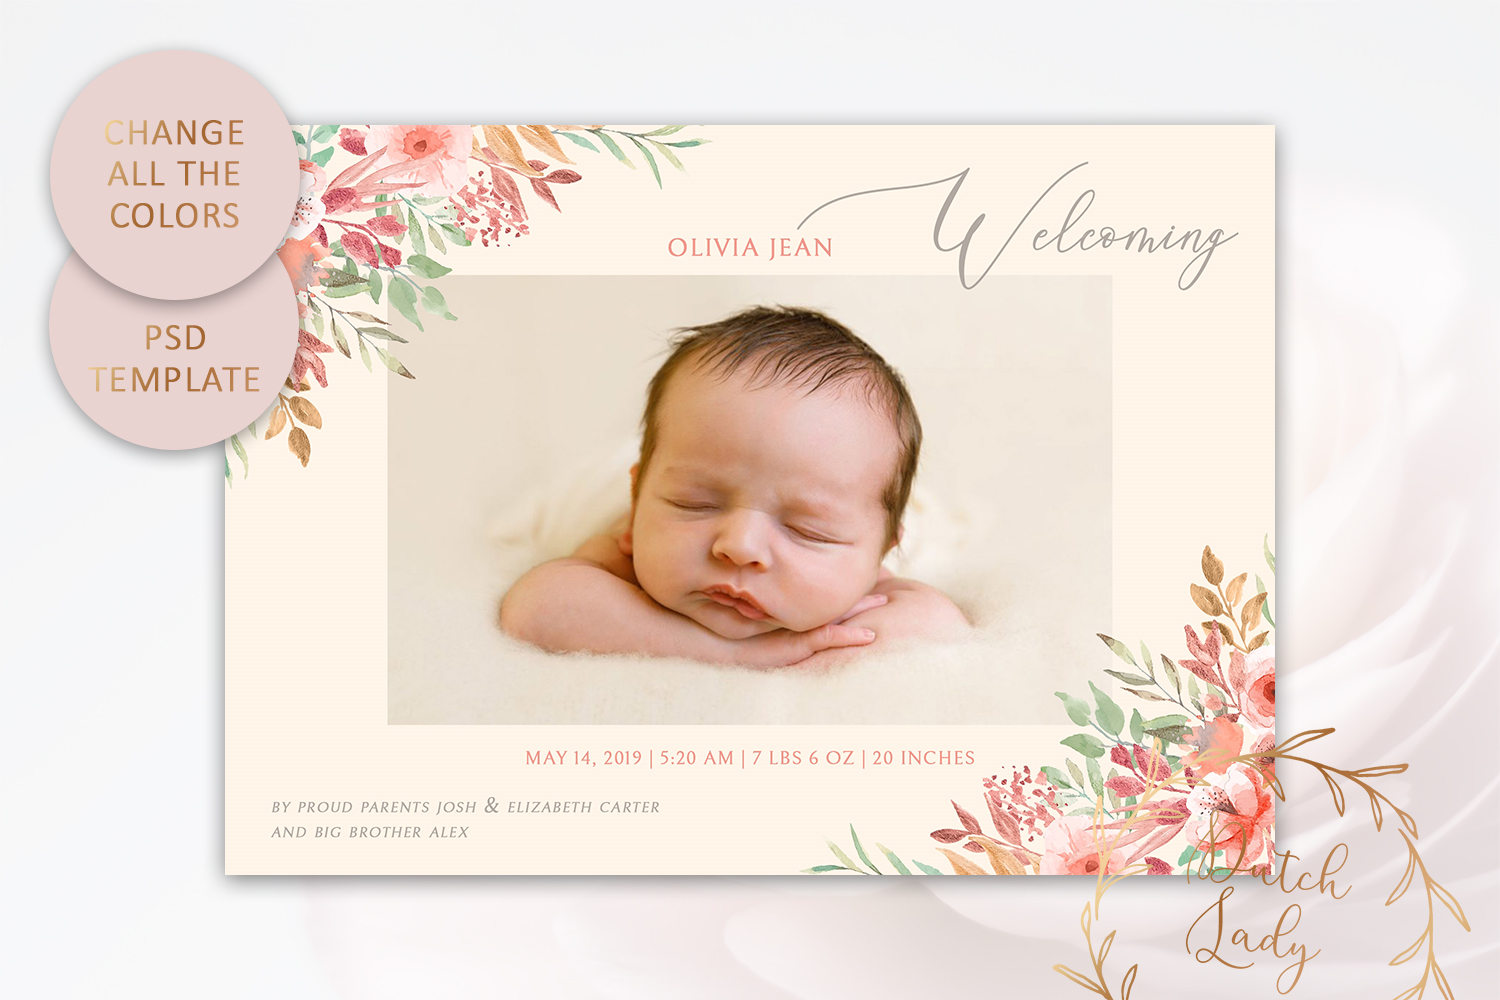 PSD Birth Announcement Card Template - Design #1 example image 3